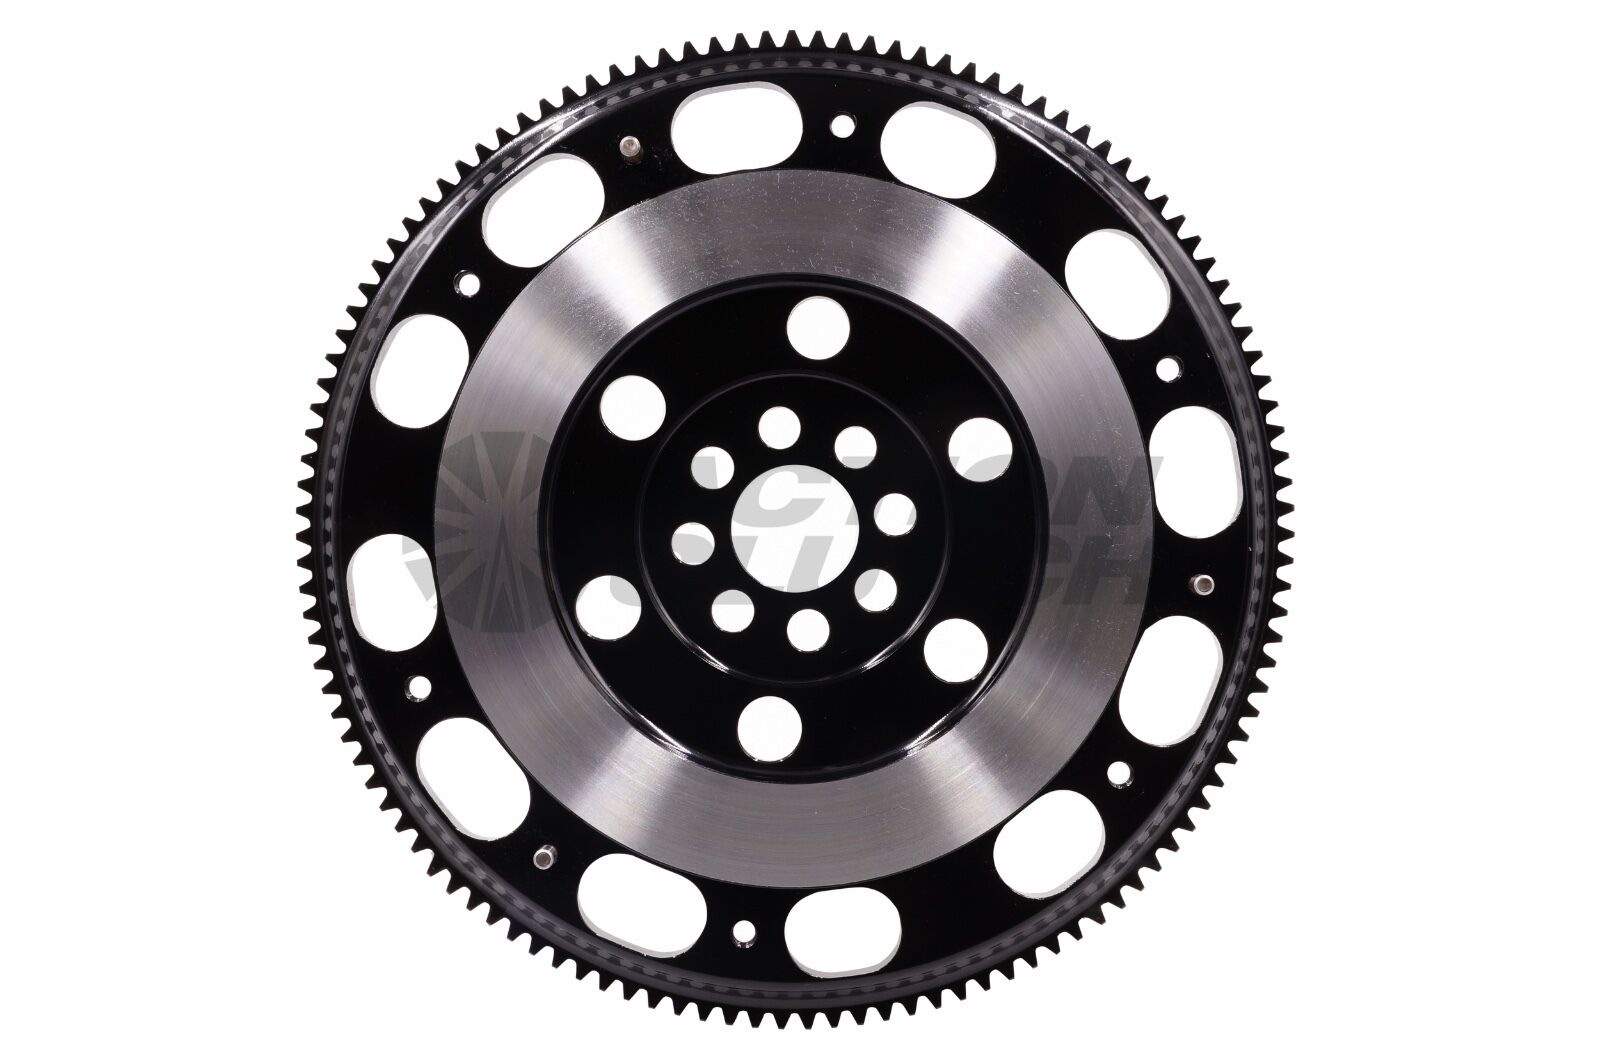 ACTION FLYWHEEL FITS Acura RSX TypeS Civic SI L Speed KA - Acura rsx type s flywheel